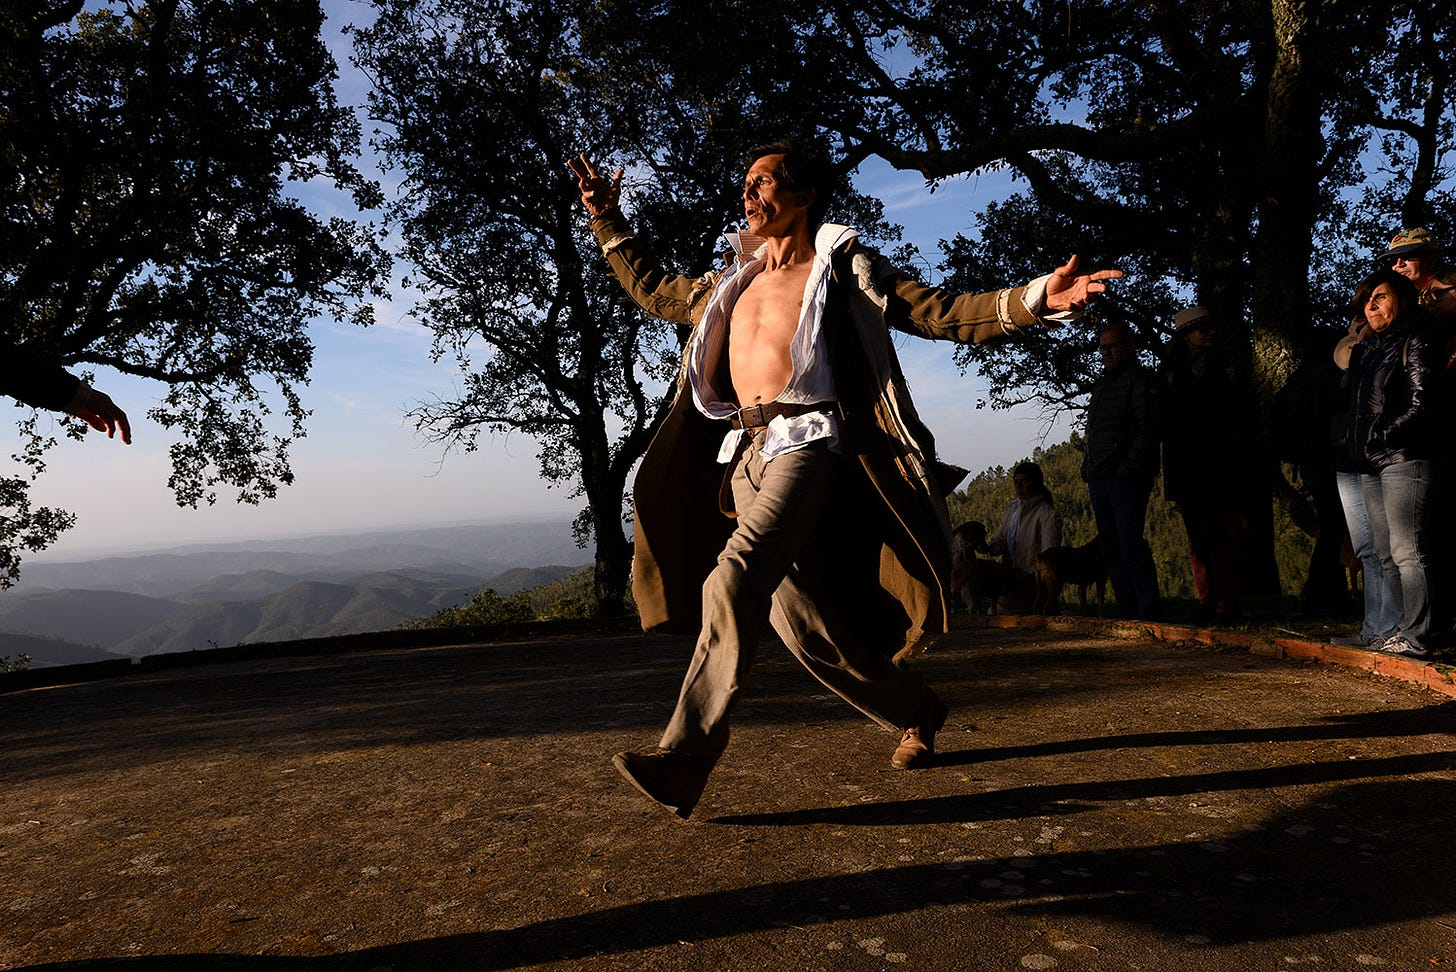 Dancer in spectacular Portuguese mountain setting watched by audience members.